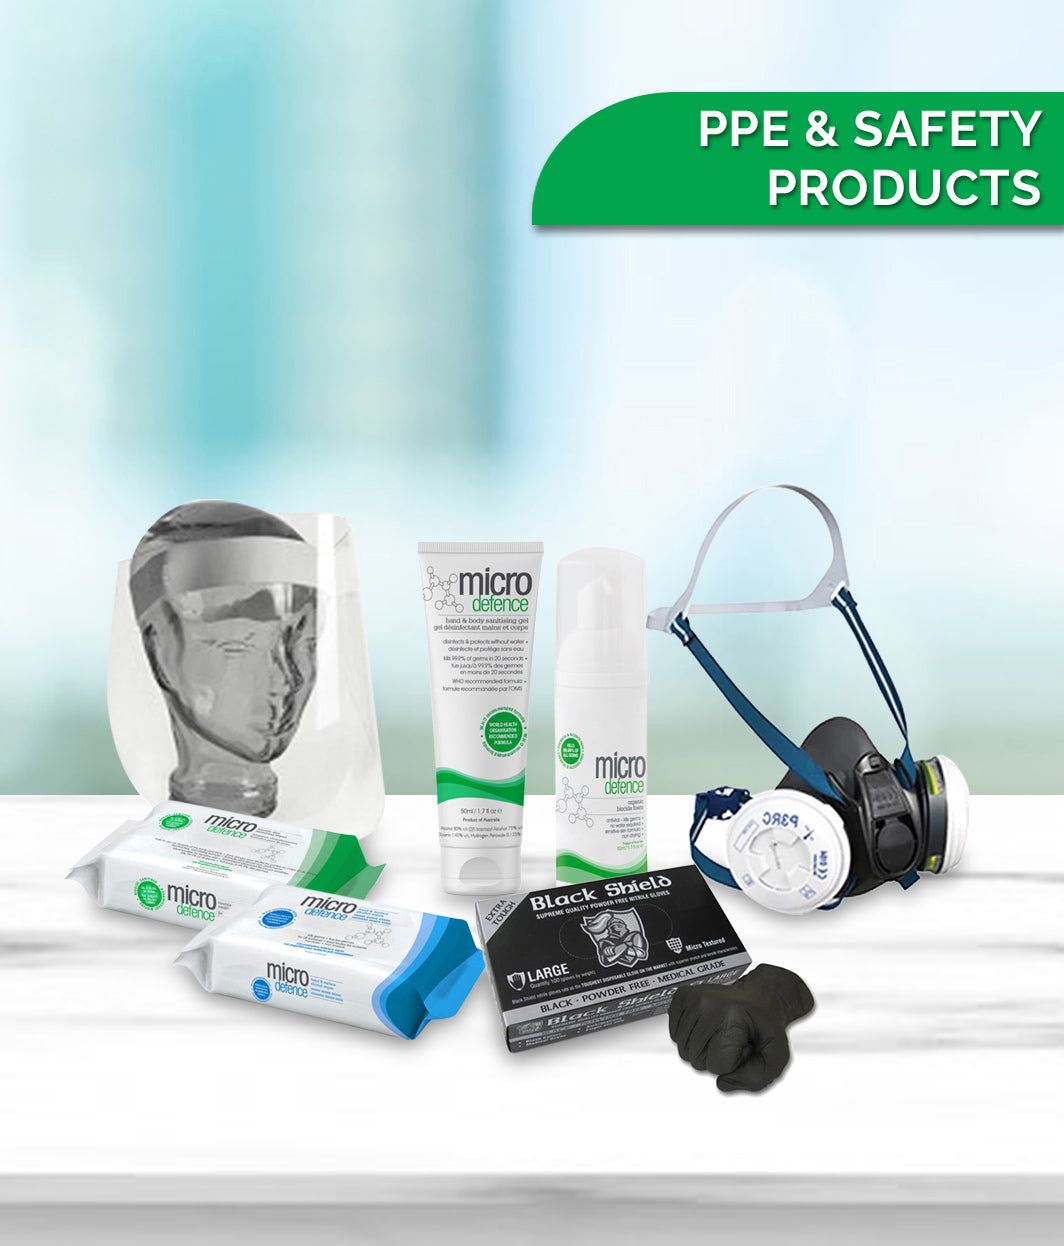 PERSONAL PROTECTIVE EQUIPMENT (PPE) & SAFETY PRODUCTS